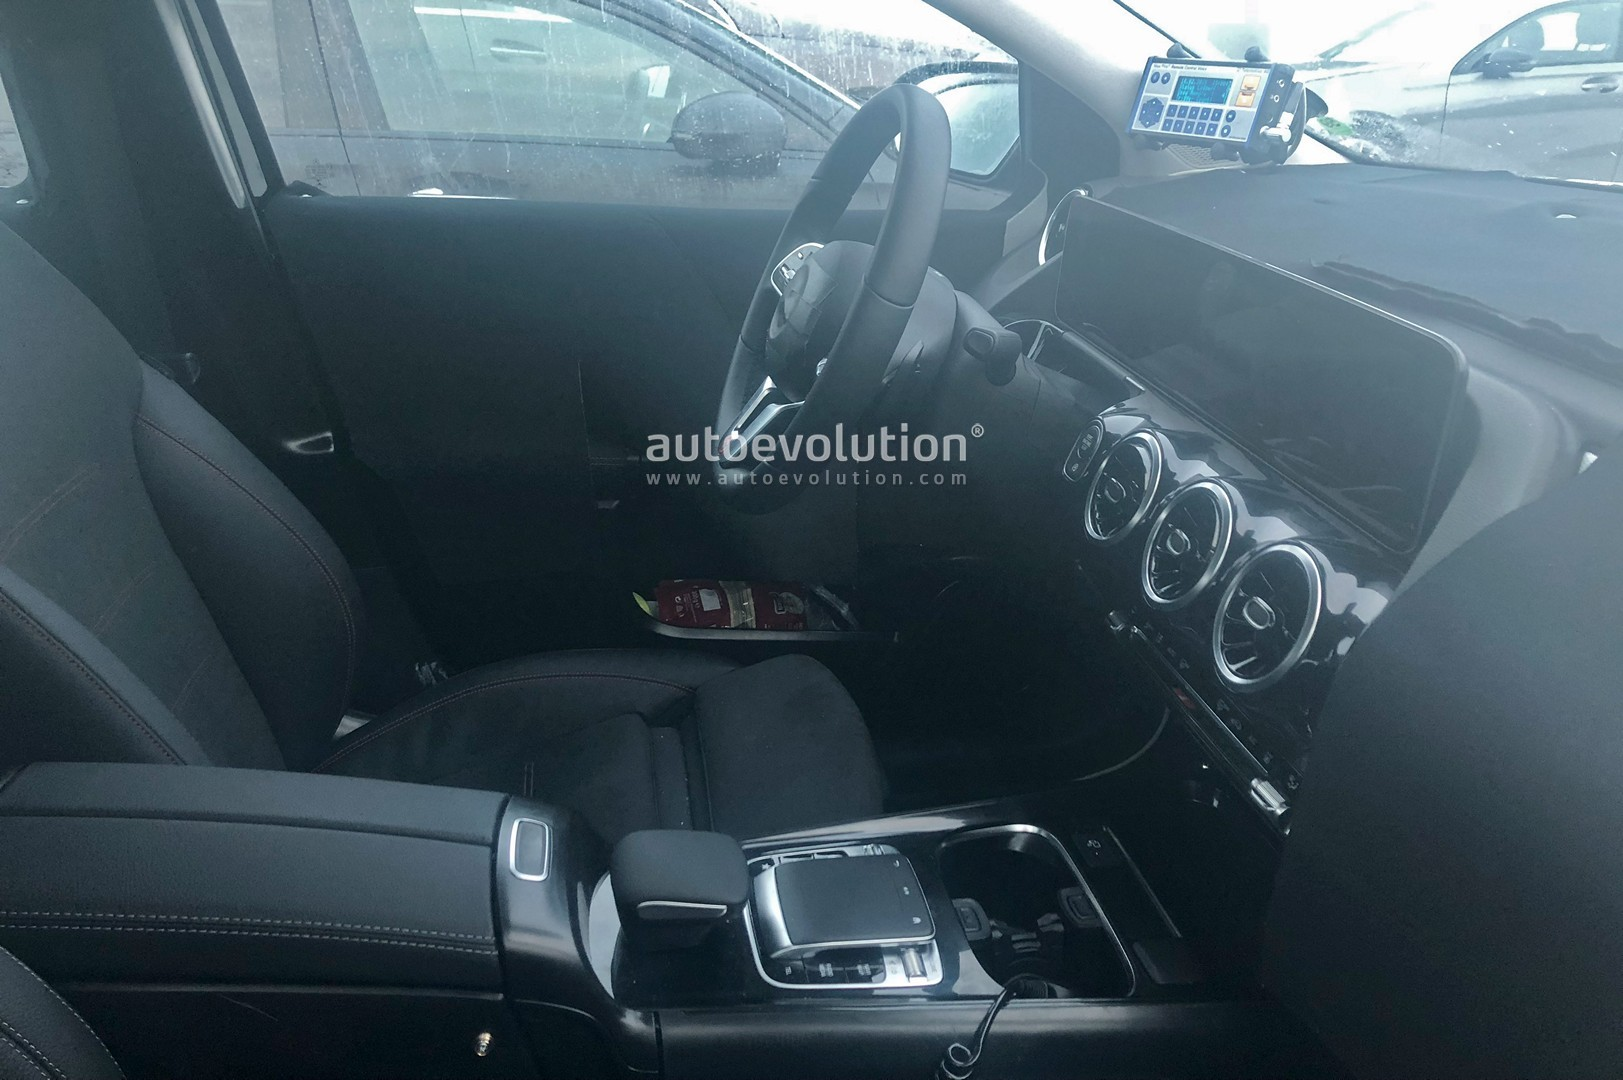 2019 mercedes benz b class reveals new interior with mbux screens amg line kit autoevolution. Black Bedroom Furniture Sets. Home Design Ideas